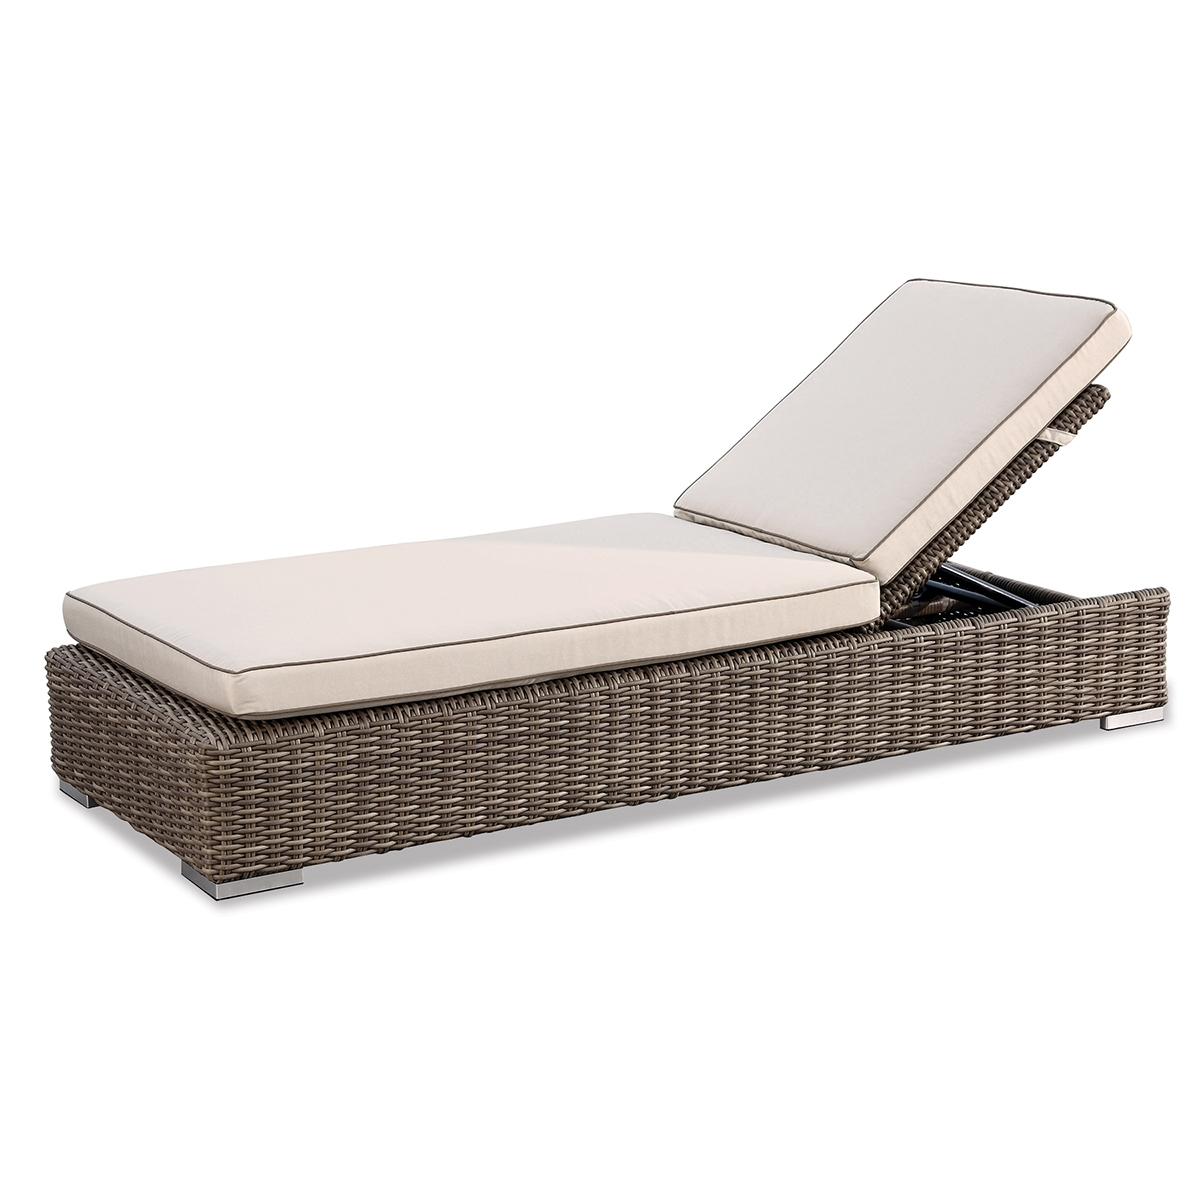 Hmp Chaise Wb Wicker Lounge Sunbrella Fabrics Hampton Collection With 2018 Hampton Bay Chaise Lounges (View 7 of 15)